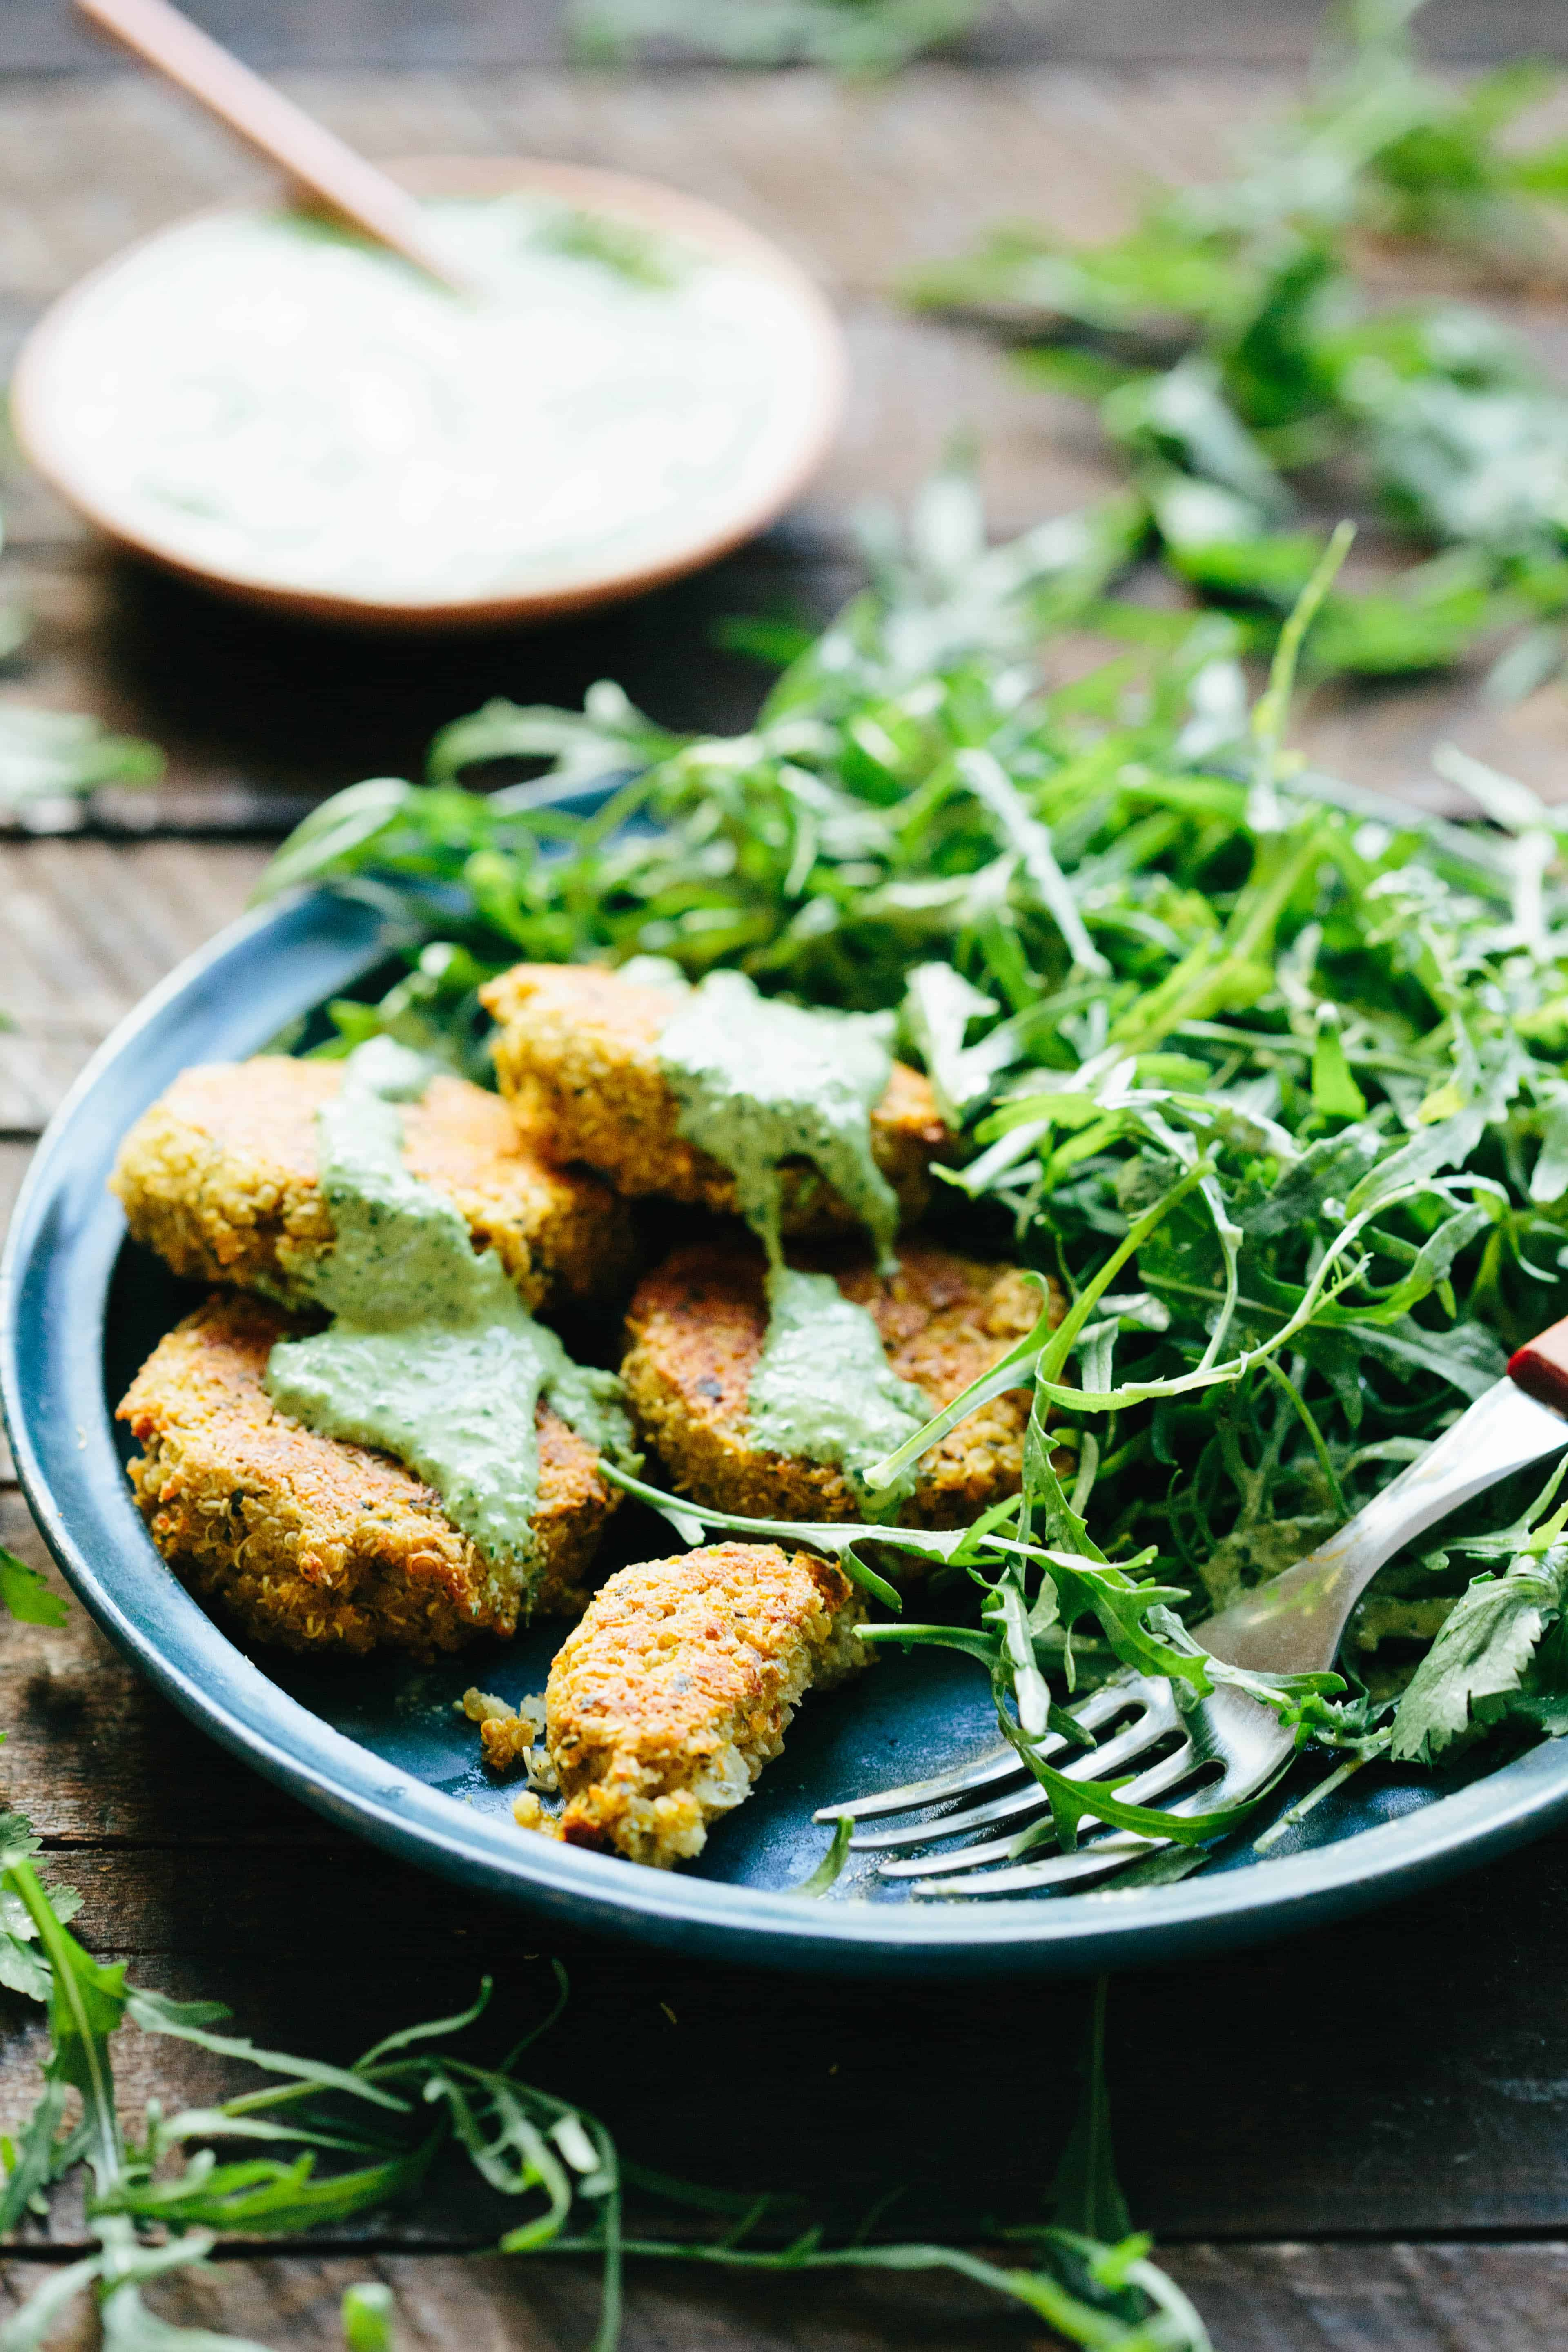 Quinoa Falafel with Green Tahini is an easy, healthy and delicious plant based dinner! Simple and satisfying! #easy #falafel #quinoa #vegan #recipe | ColeyCooks.com